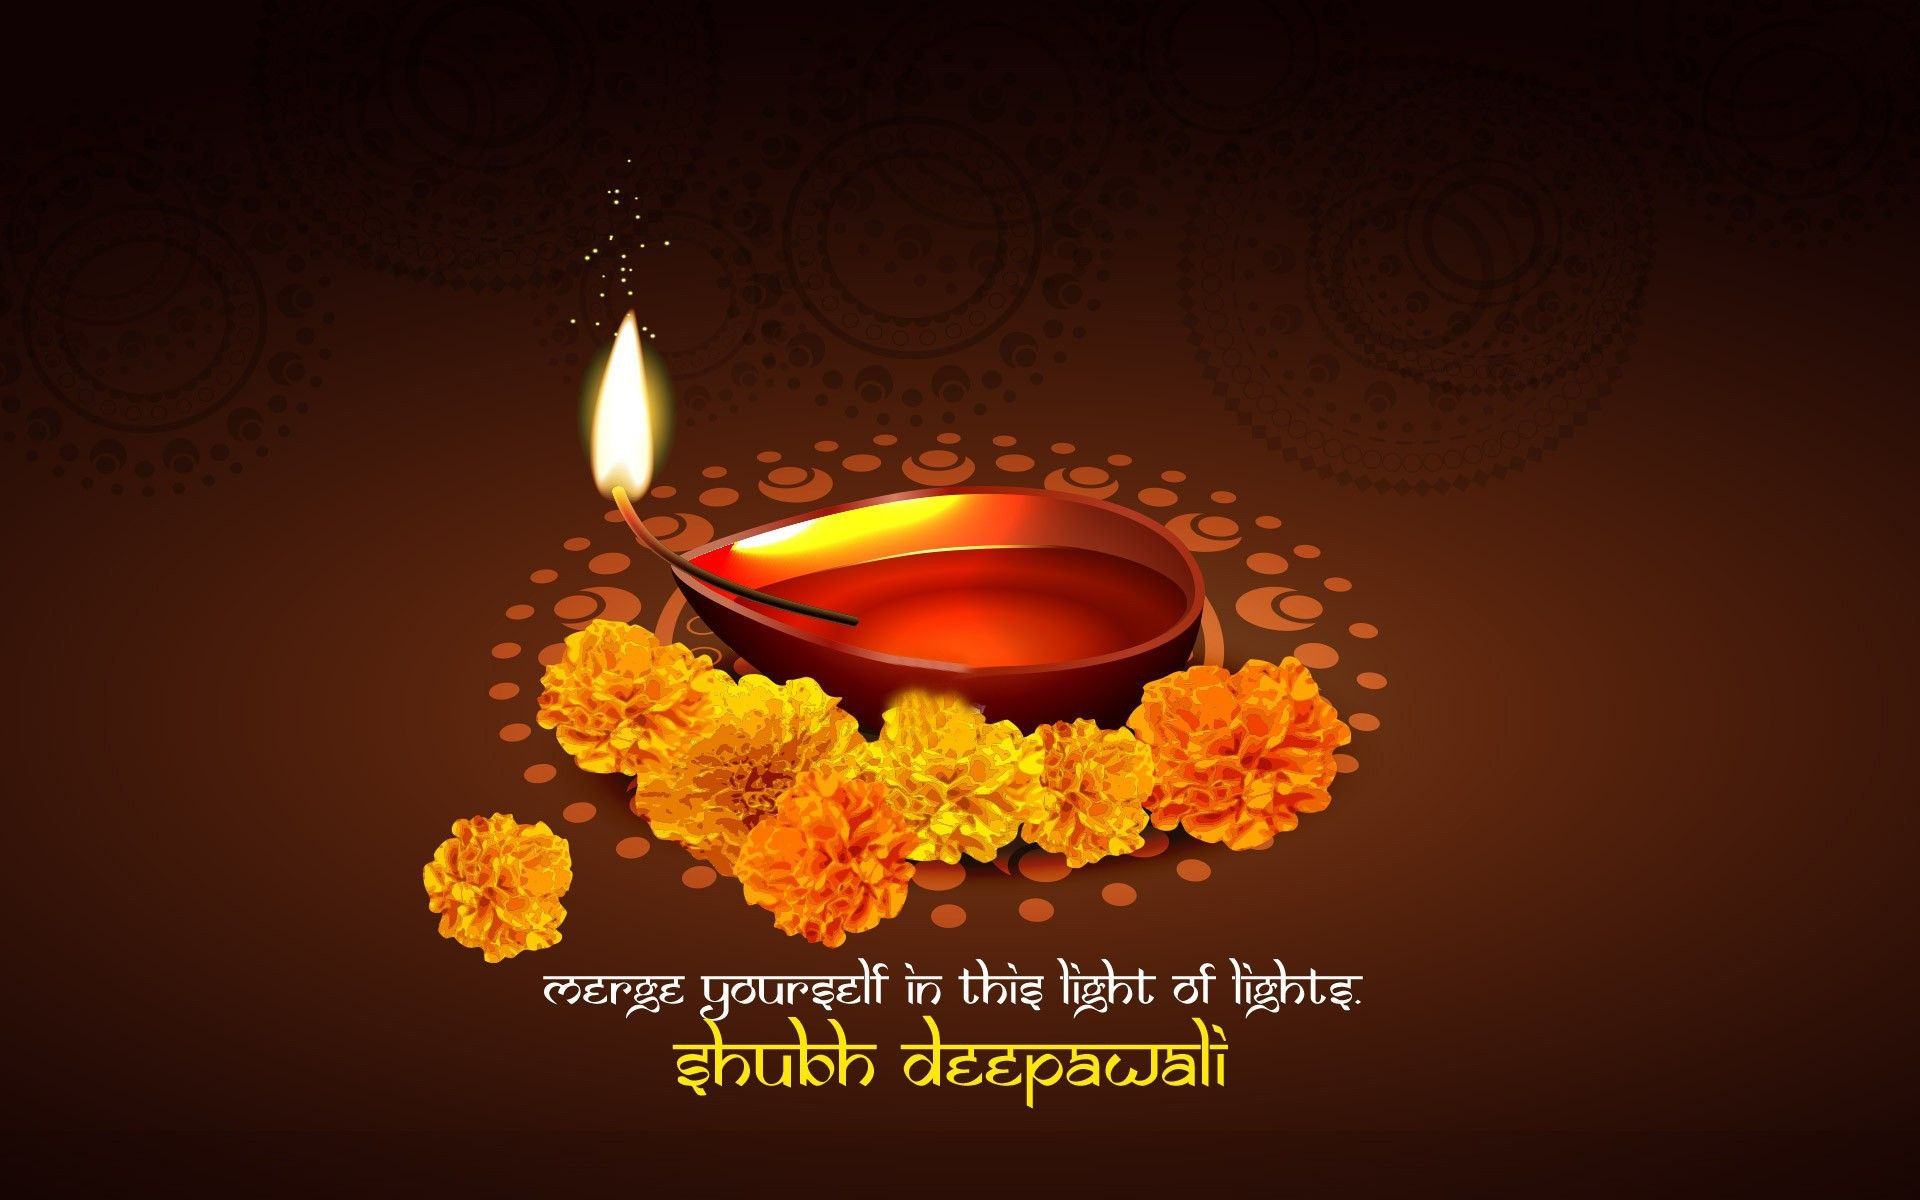 Happy diwali 2015 wallpaper happy diwali greetings wishes hd happy diwali 2015 wallpaper kristyandbryce Image collections